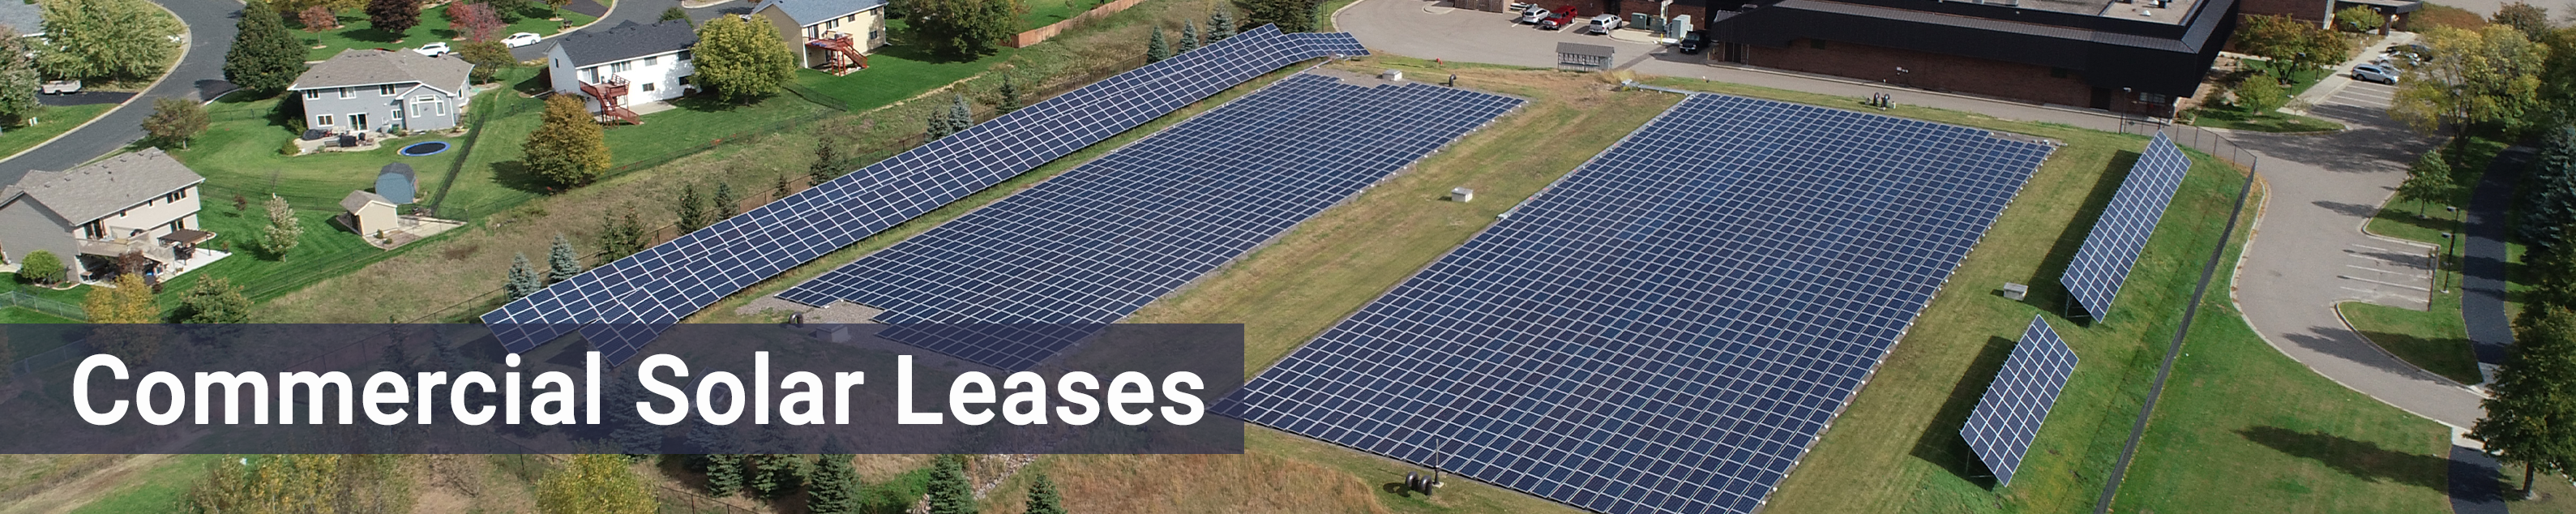 Commercial Solar Leases